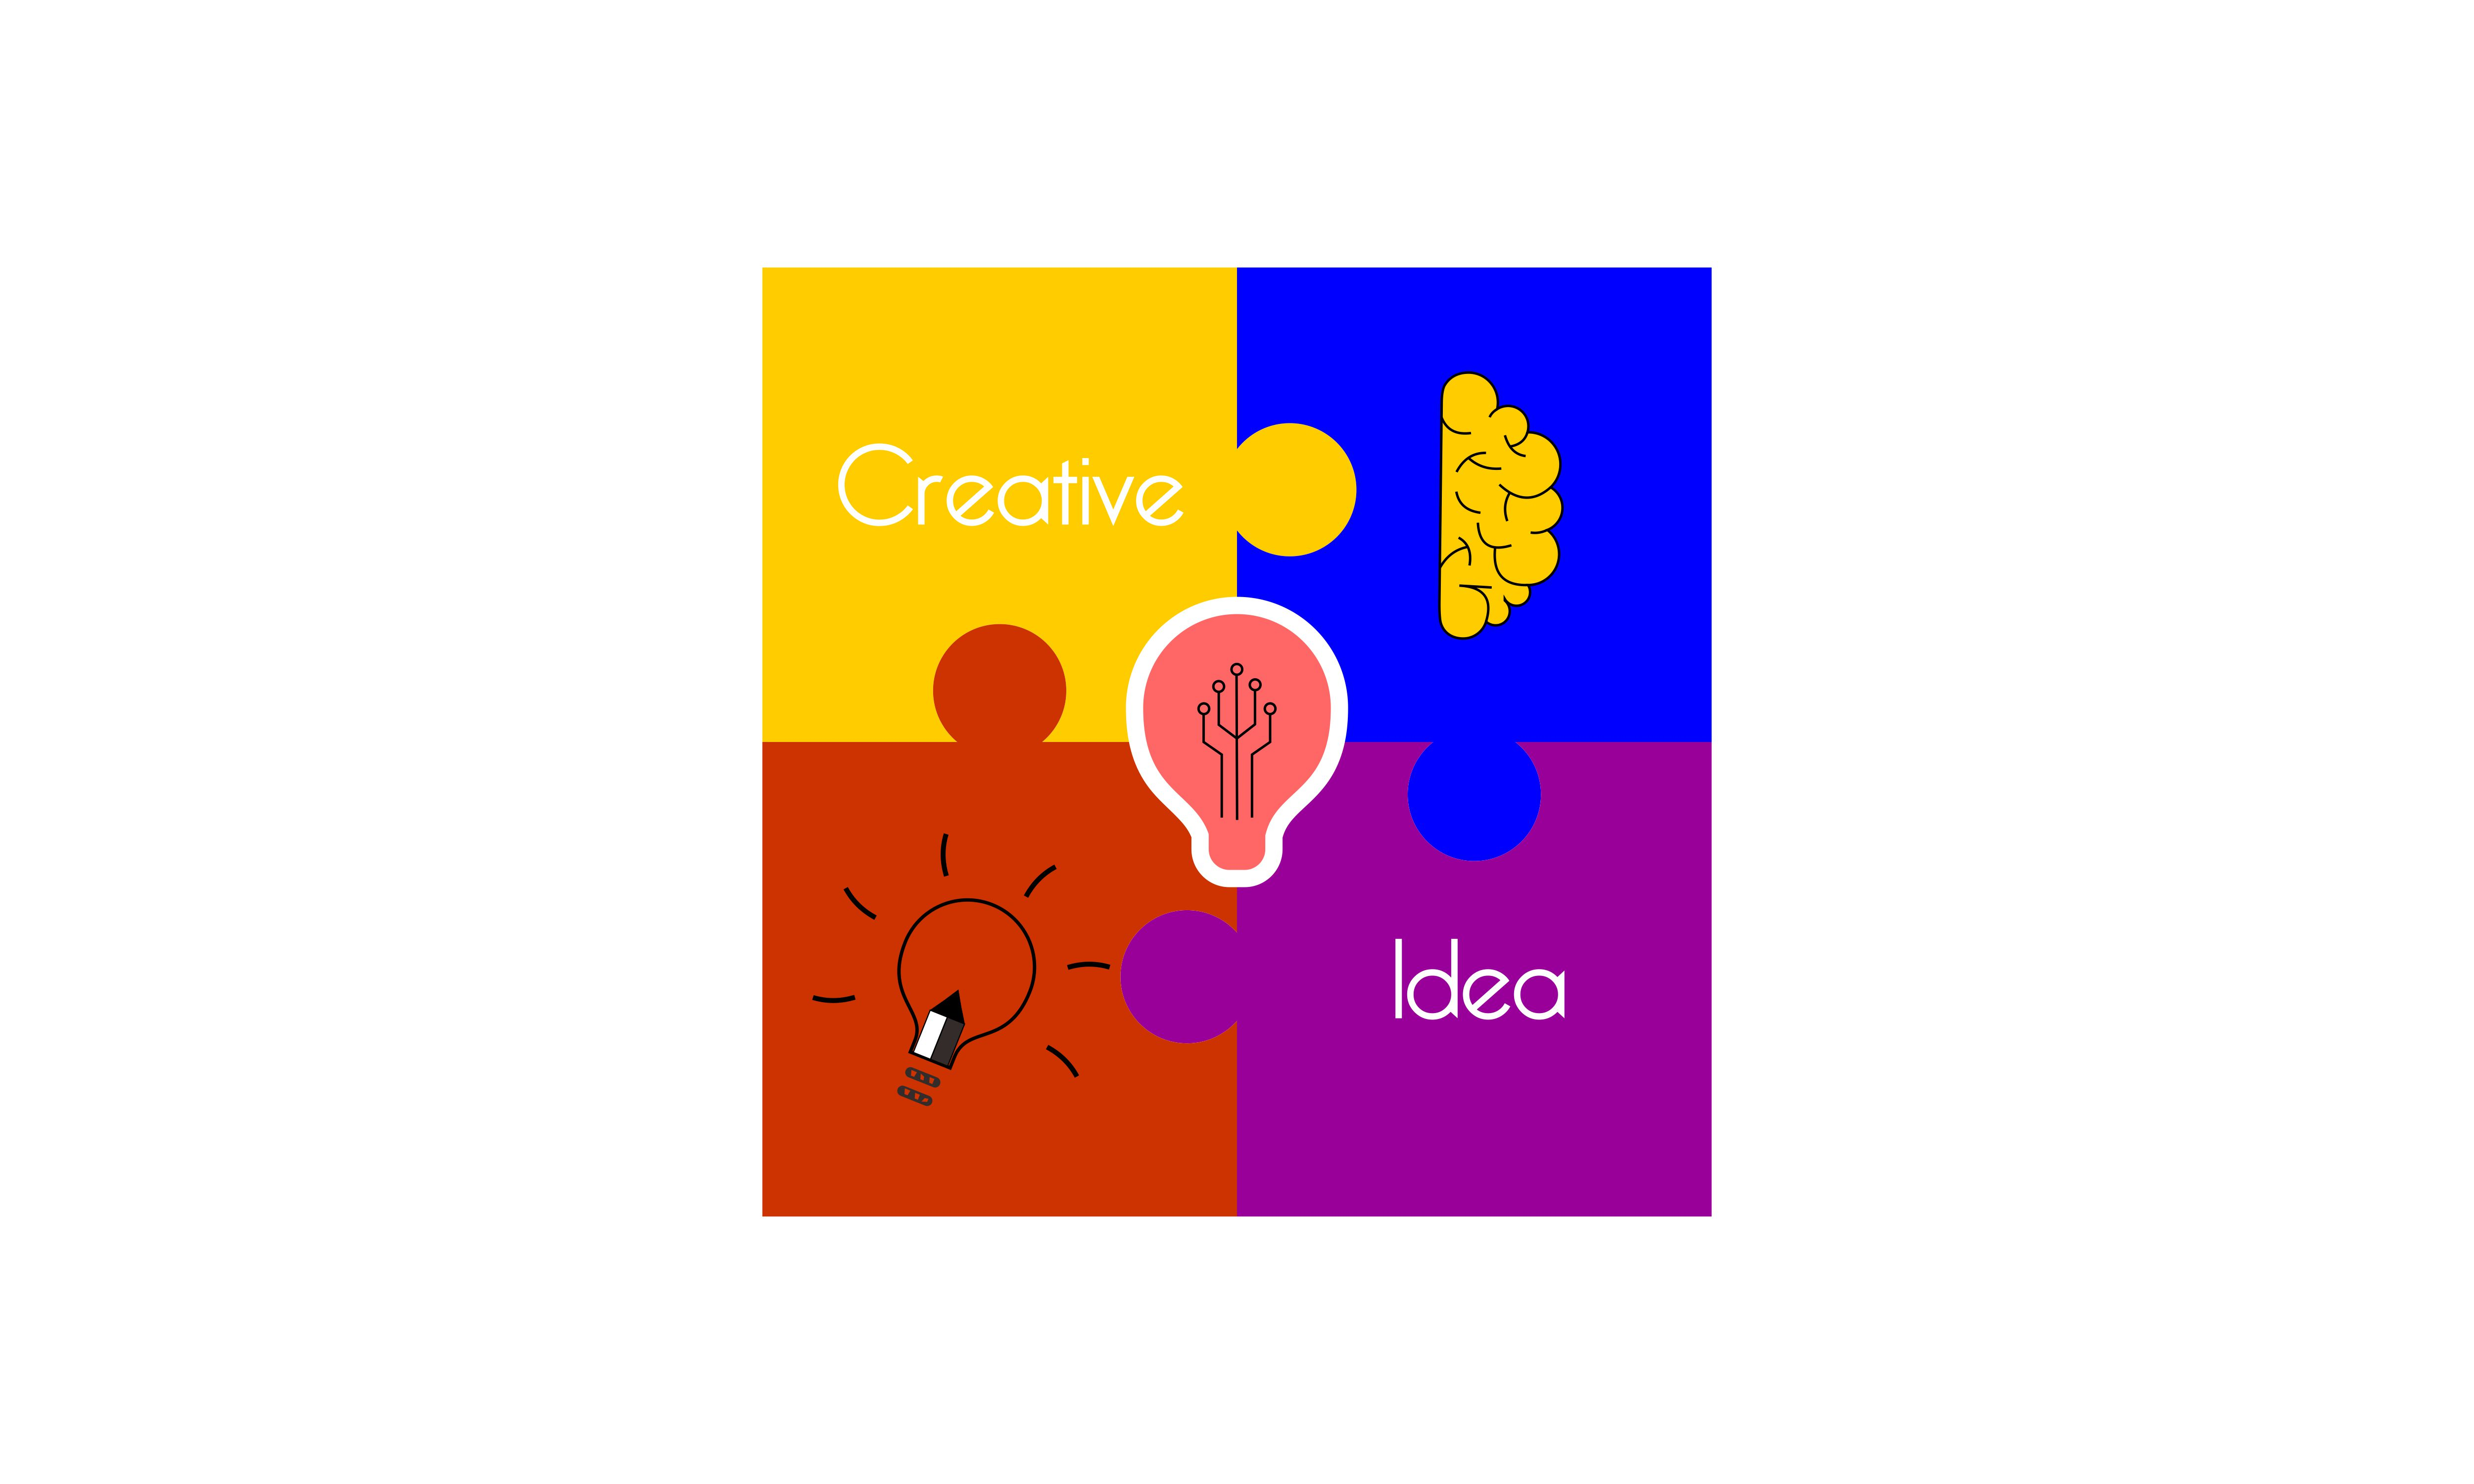 Download Free Creative Idea Mind Puzzle Logo Vector Graphic By Deemka Studio for Cricut Explore, Silhouette and other cutting machines.